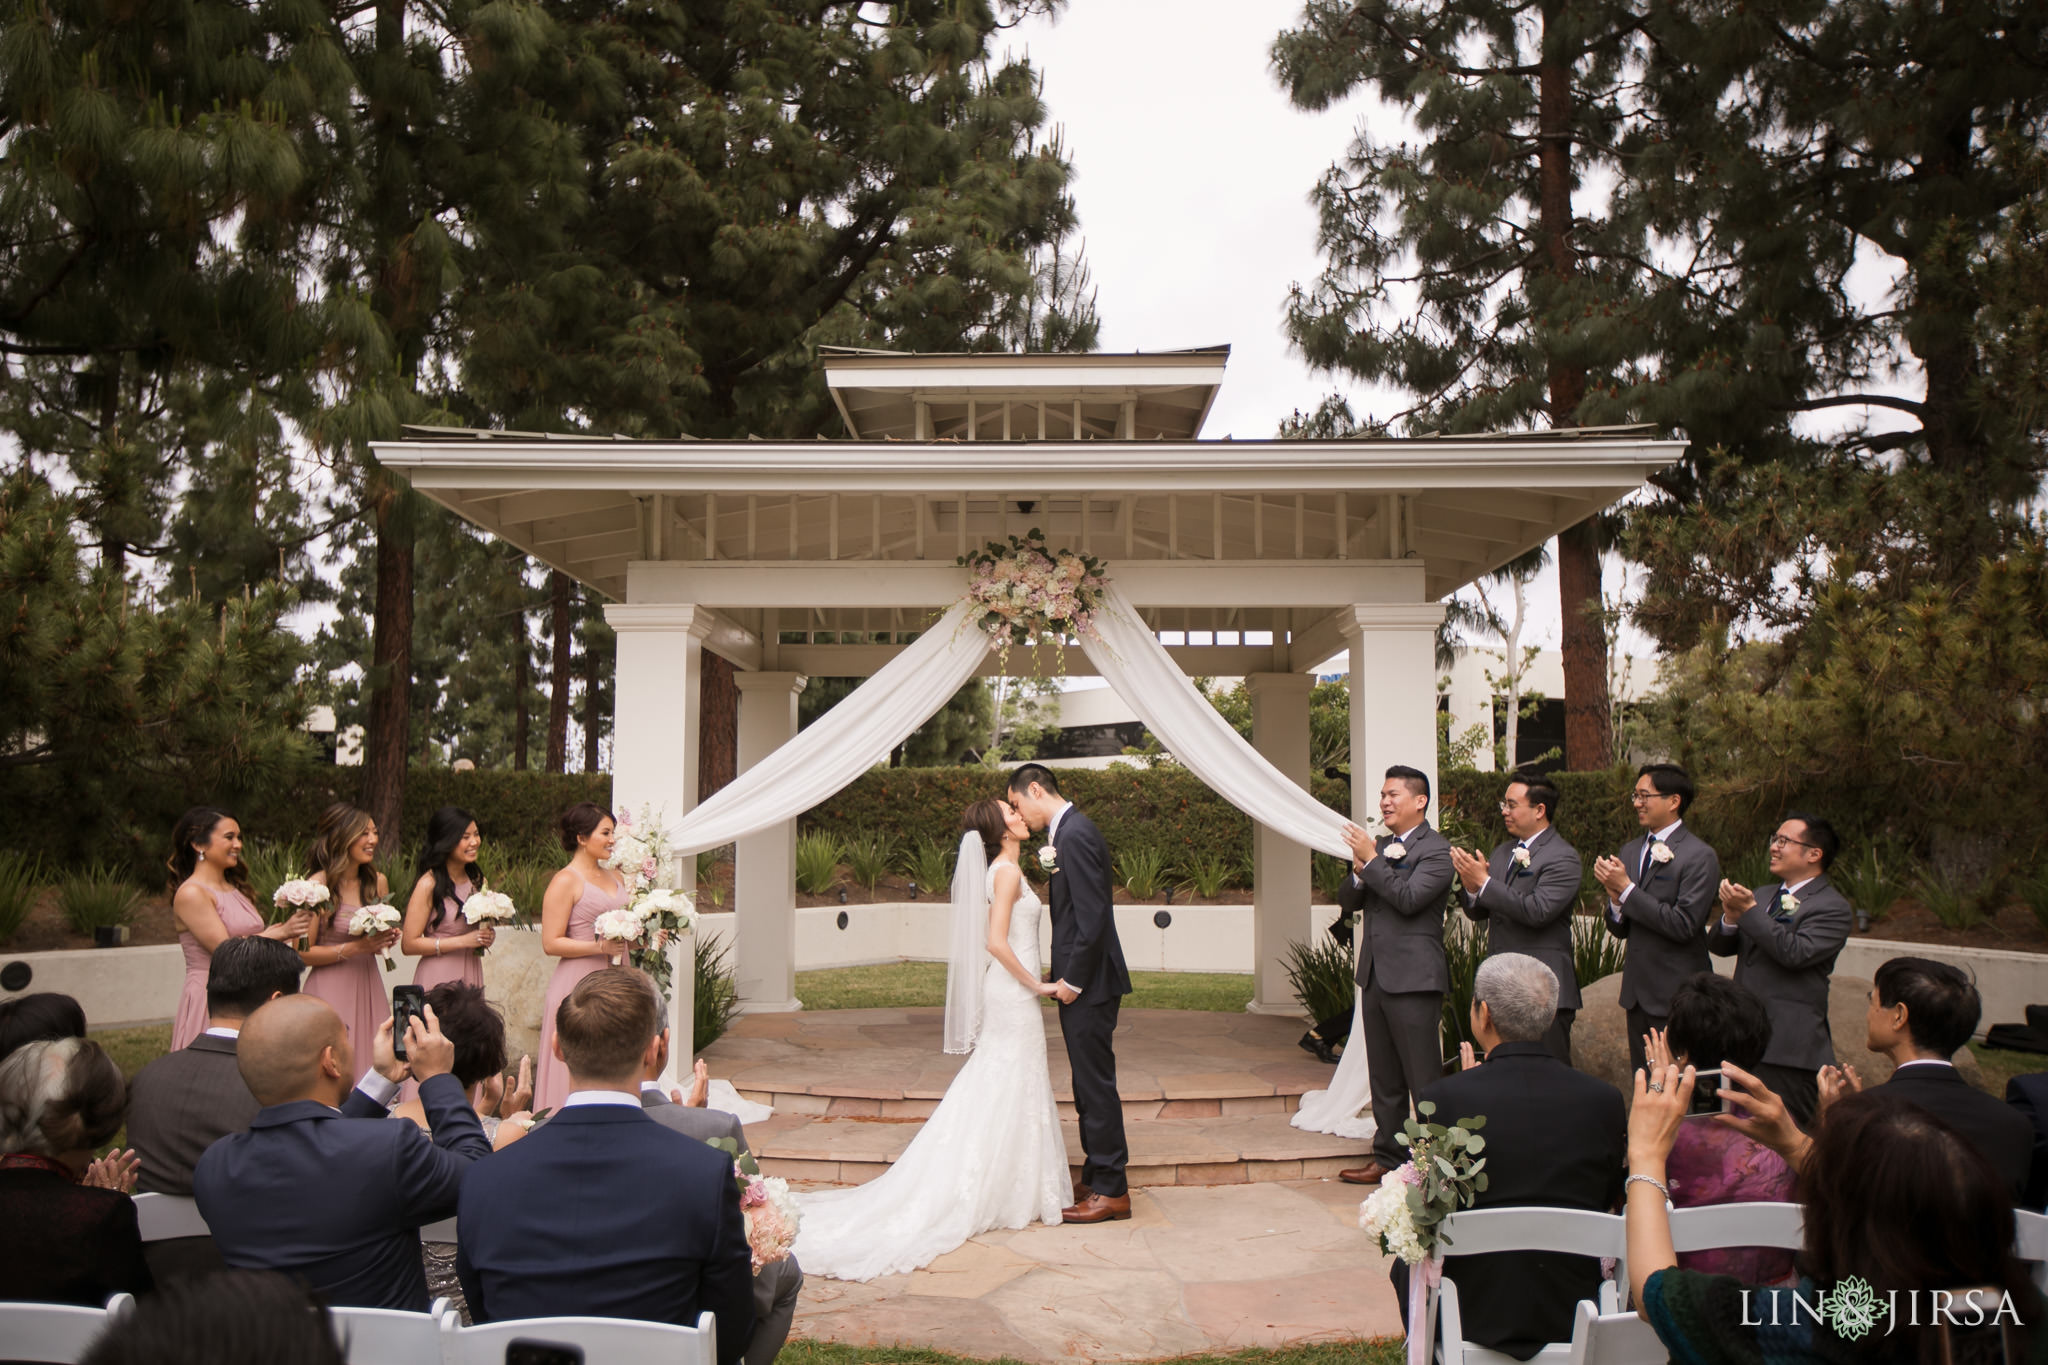 21 turnip rose promenade orange county wedding ceremony photography